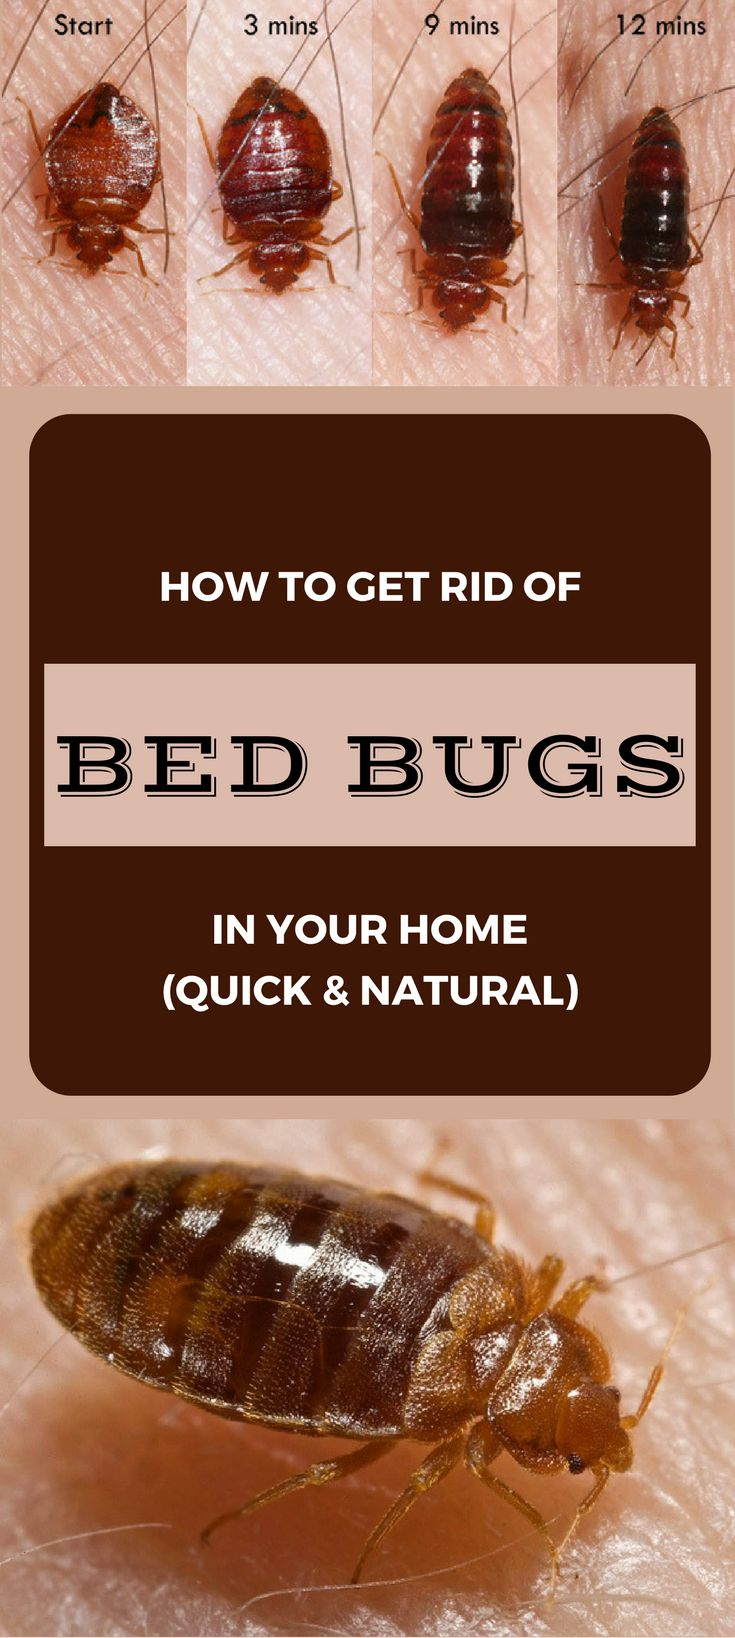 How To Get Rid Of Bed Bugs In Your Home Quick And Natural